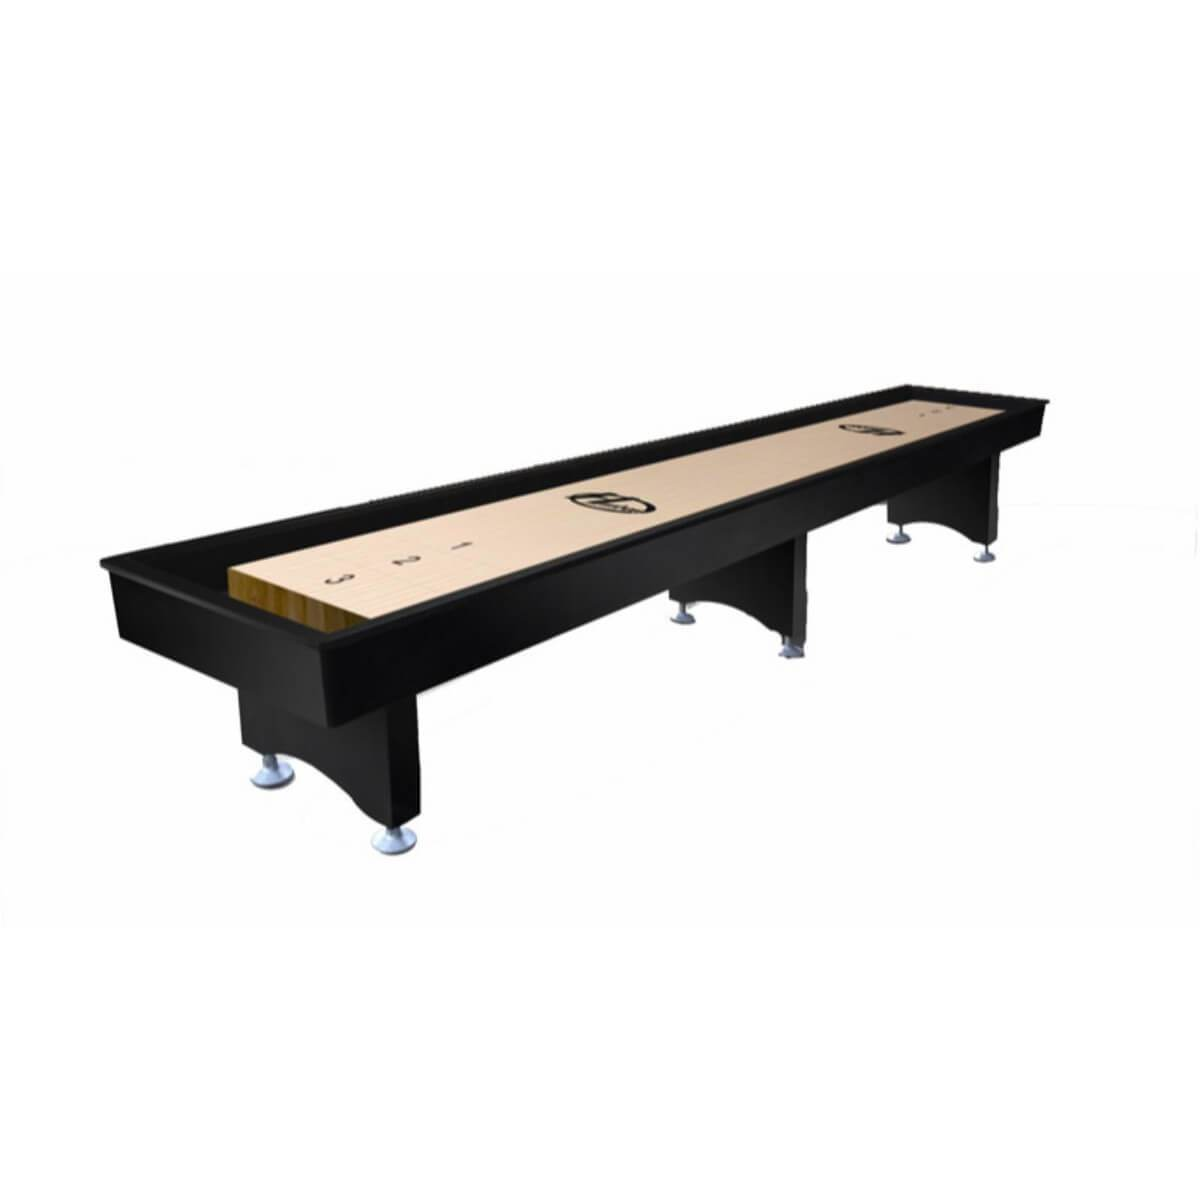 Hudson The Commercial Shuffleboard Table 9'-22' with Custom Stain Options - Gaming Blaze